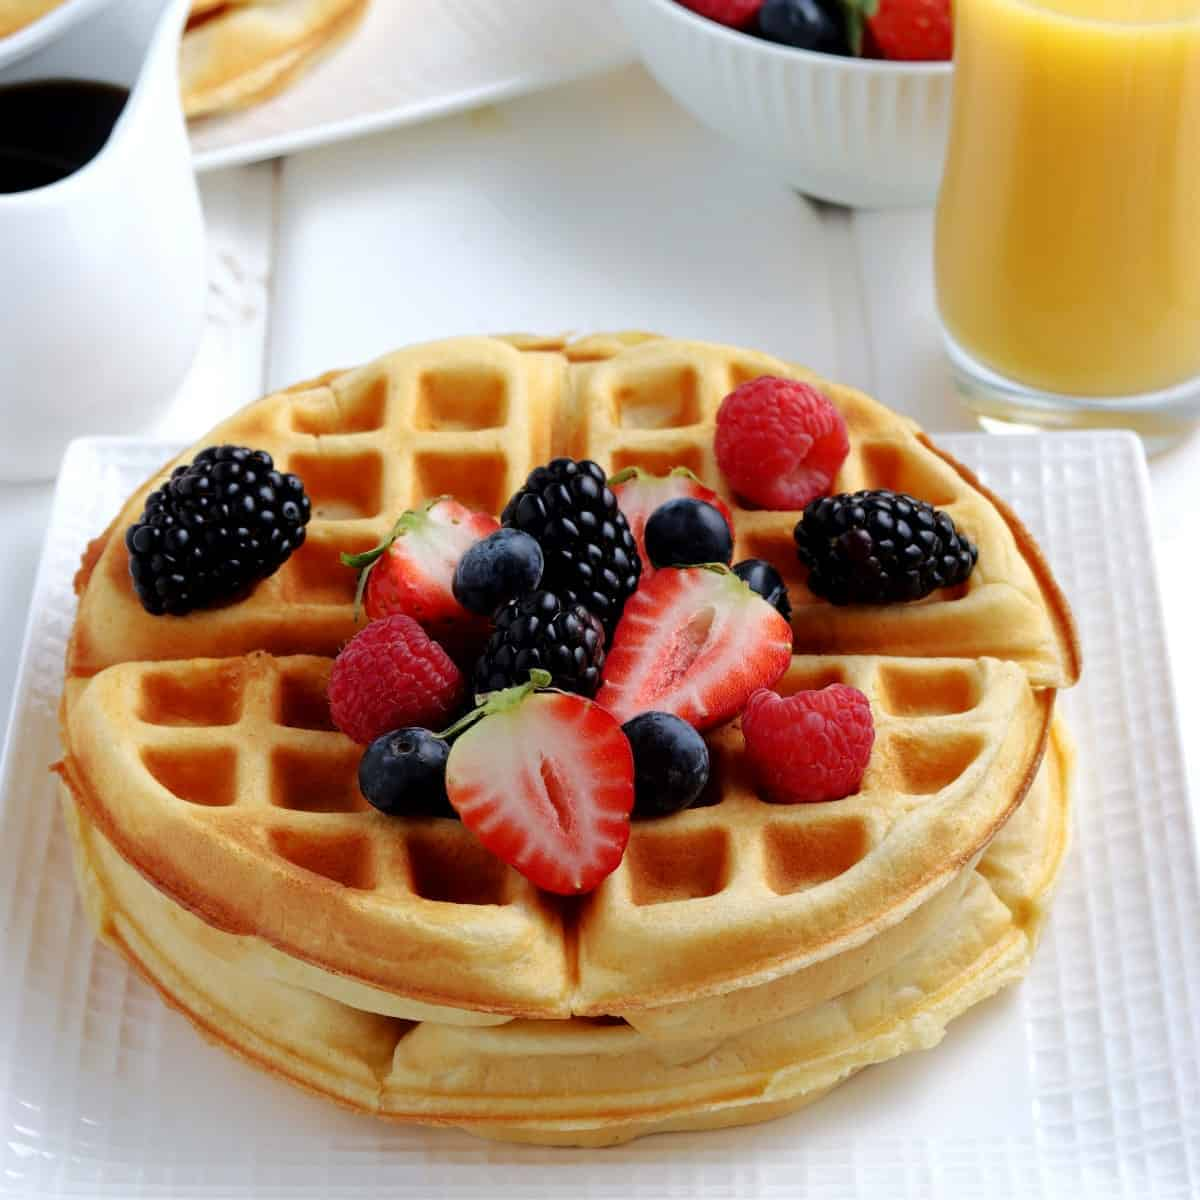 Two breakfast treats on a plate with fresh berries on top.